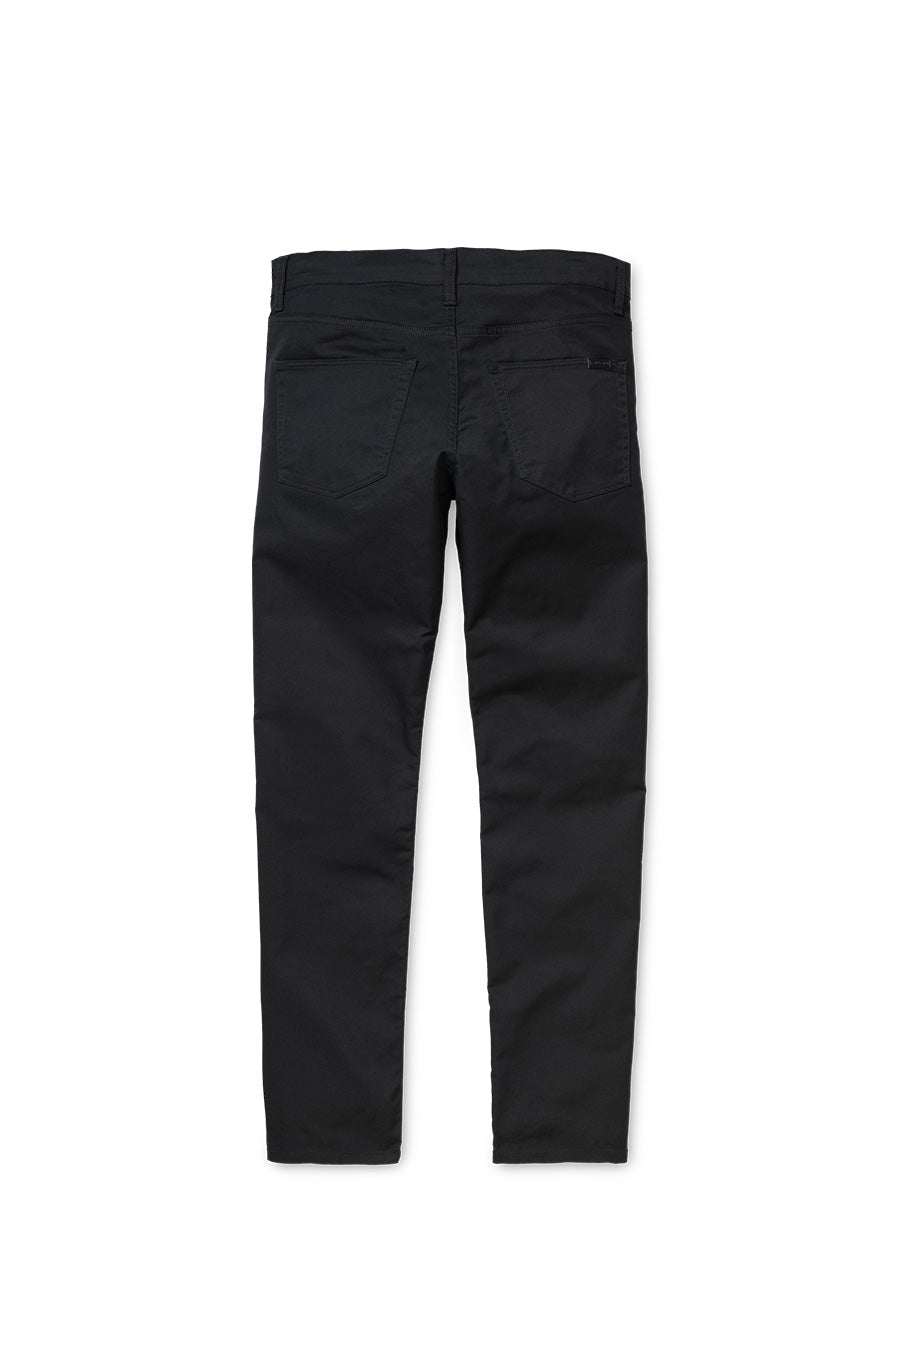 Carhartt WIP - Black Rinsed Vicious Pants | 1032 SPACE